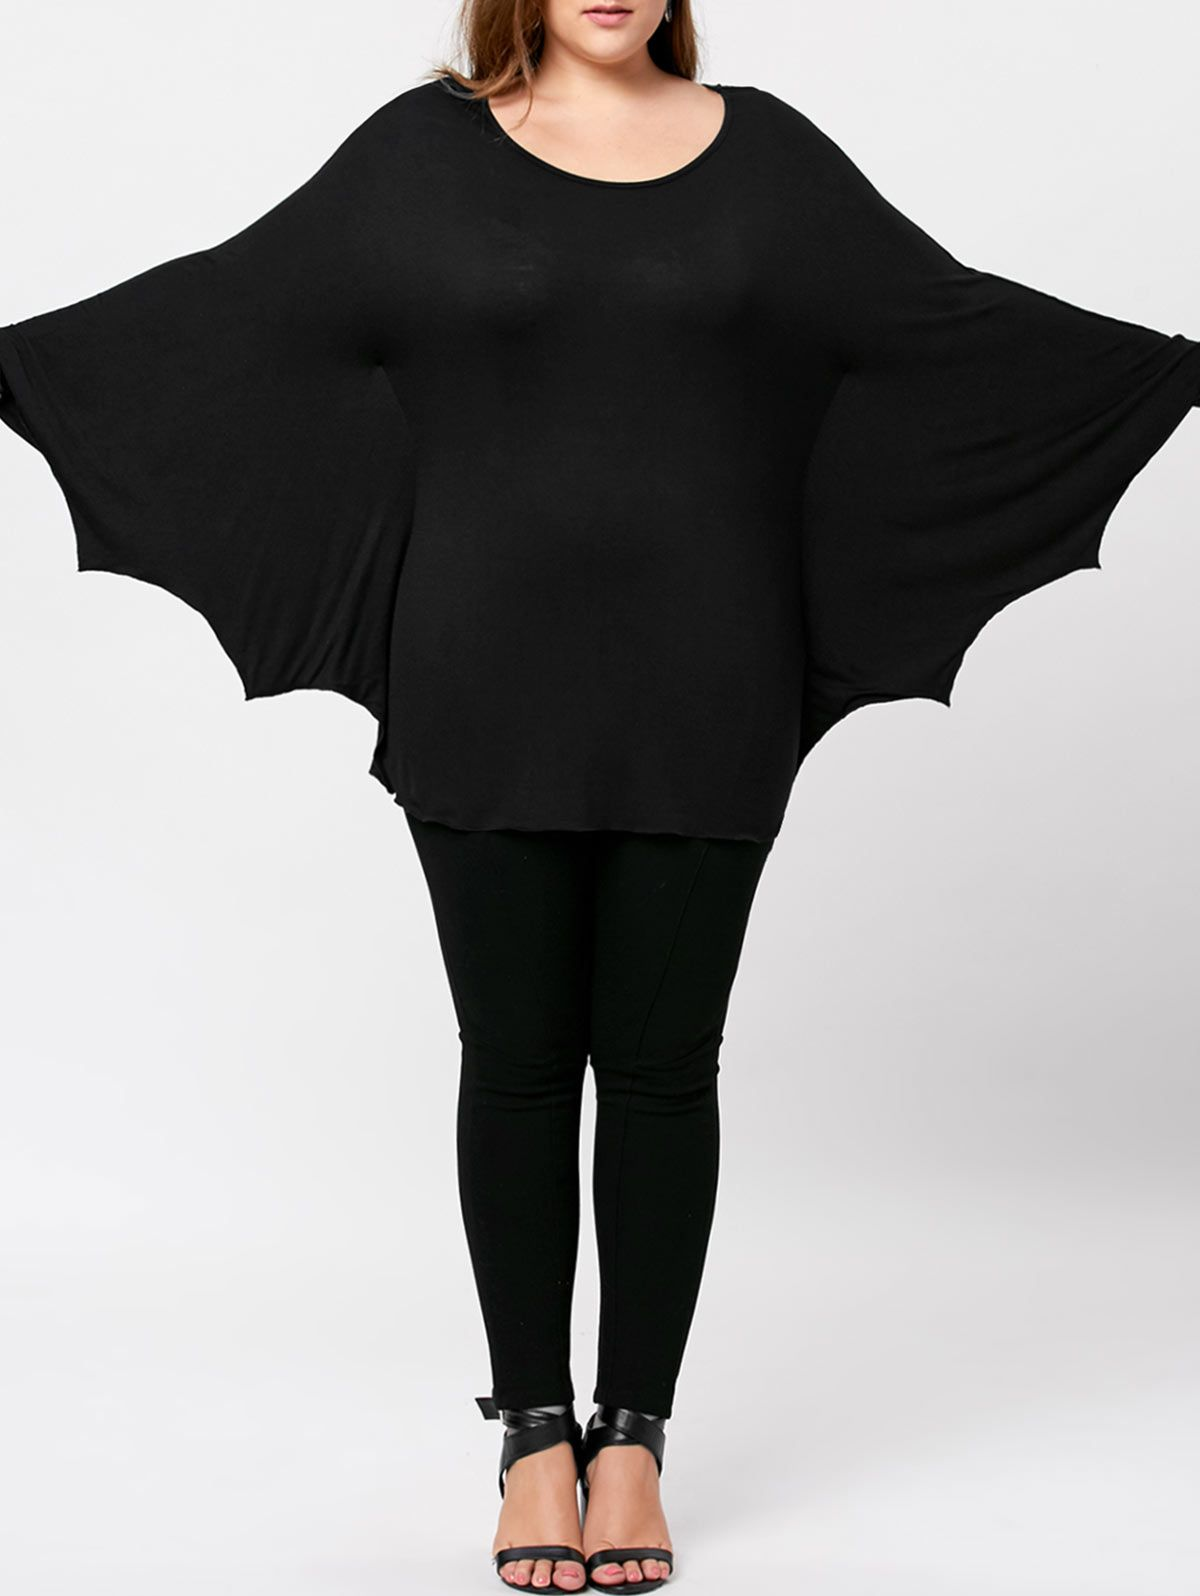 plus size halloween batwing t shirt black 3xl